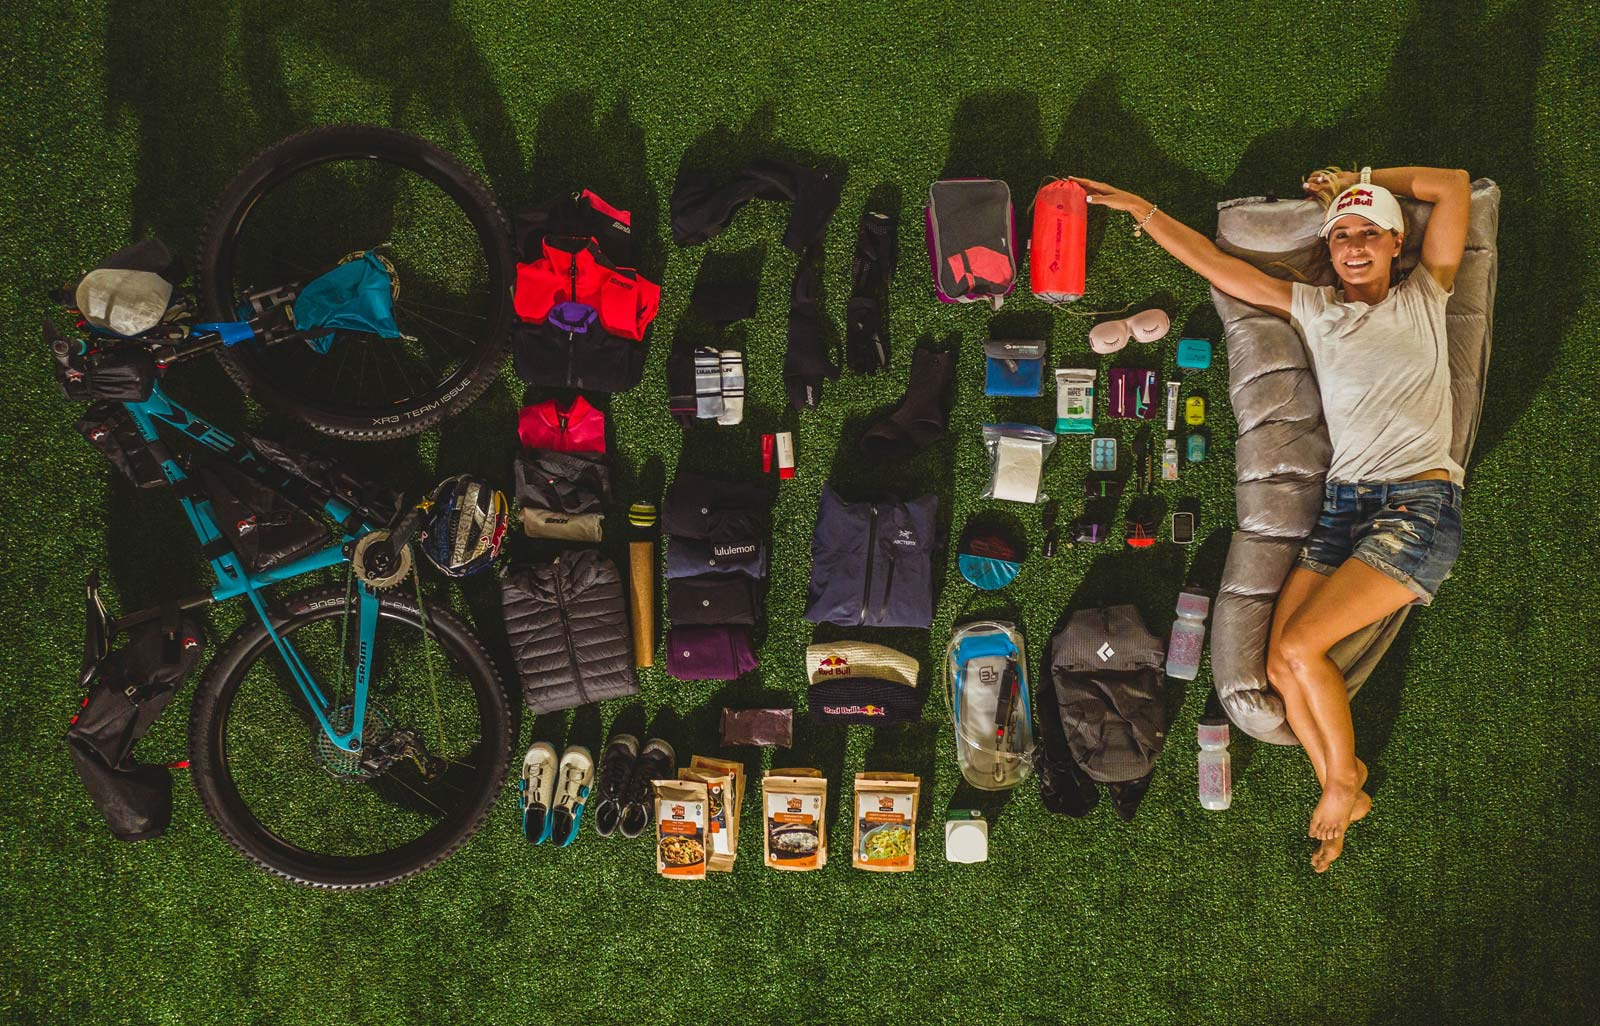 Detour to Tokyo – The Gear for Bikepacking Across Iceland